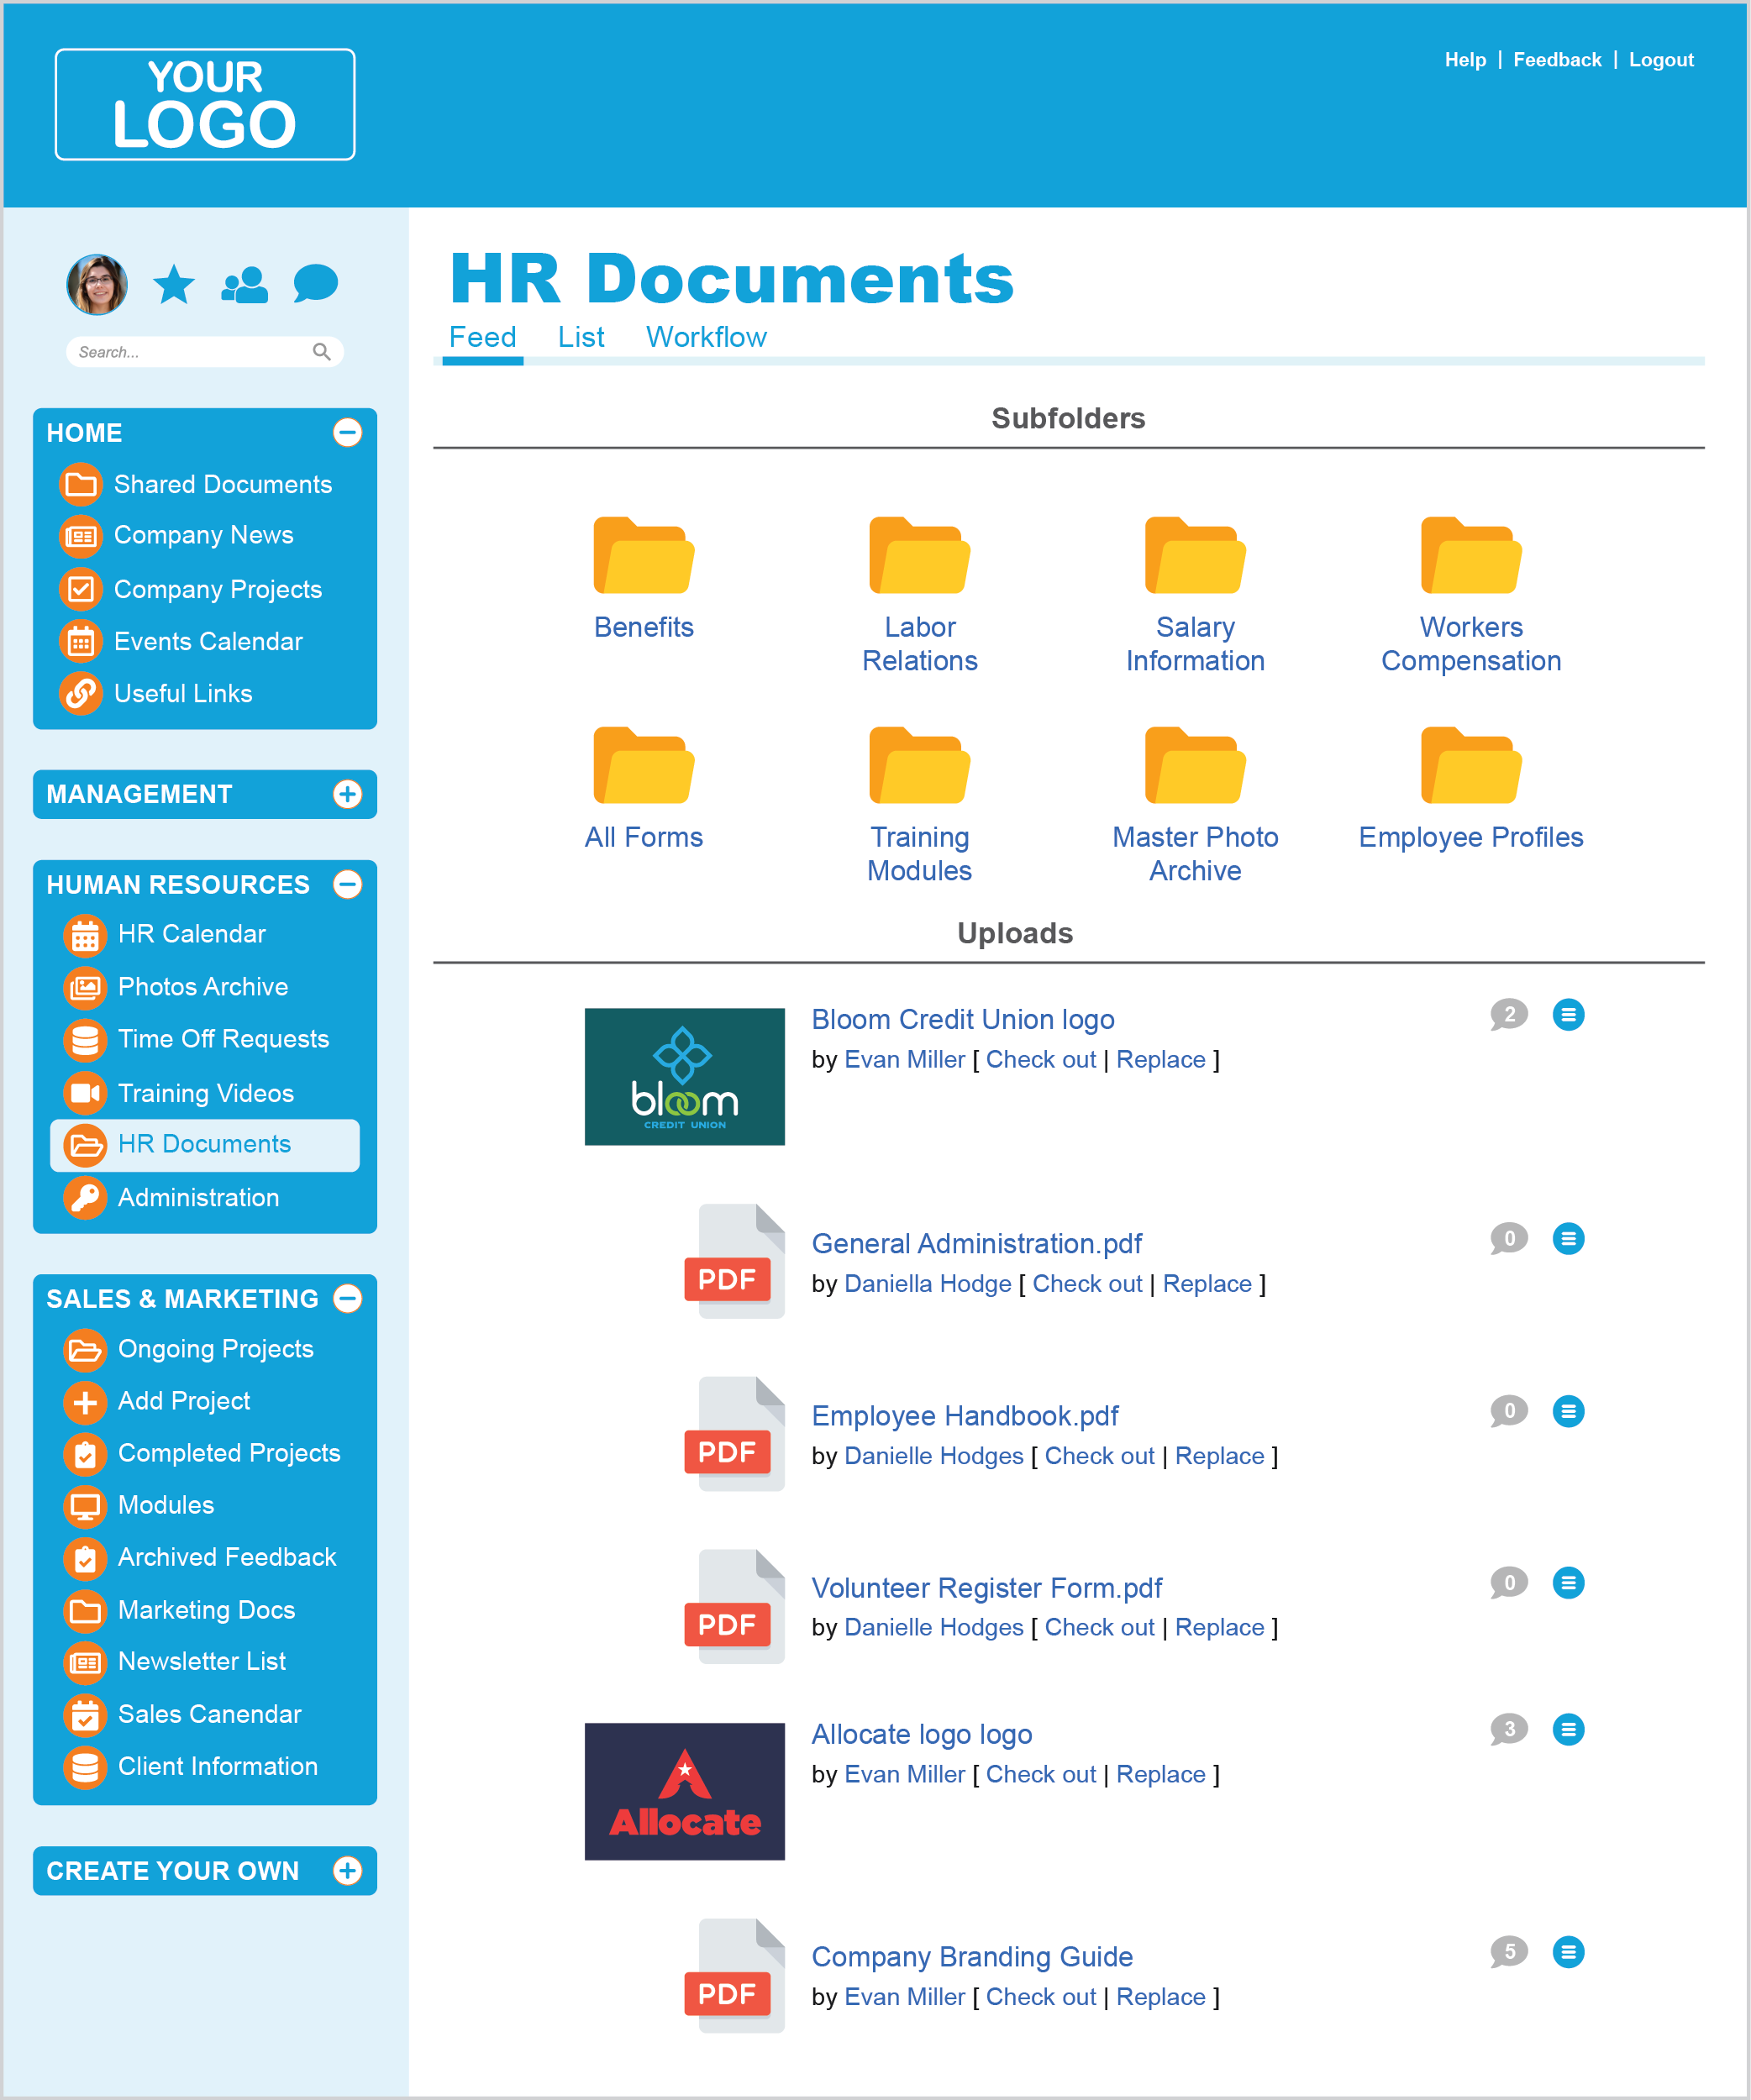 Intranet Shared Documents